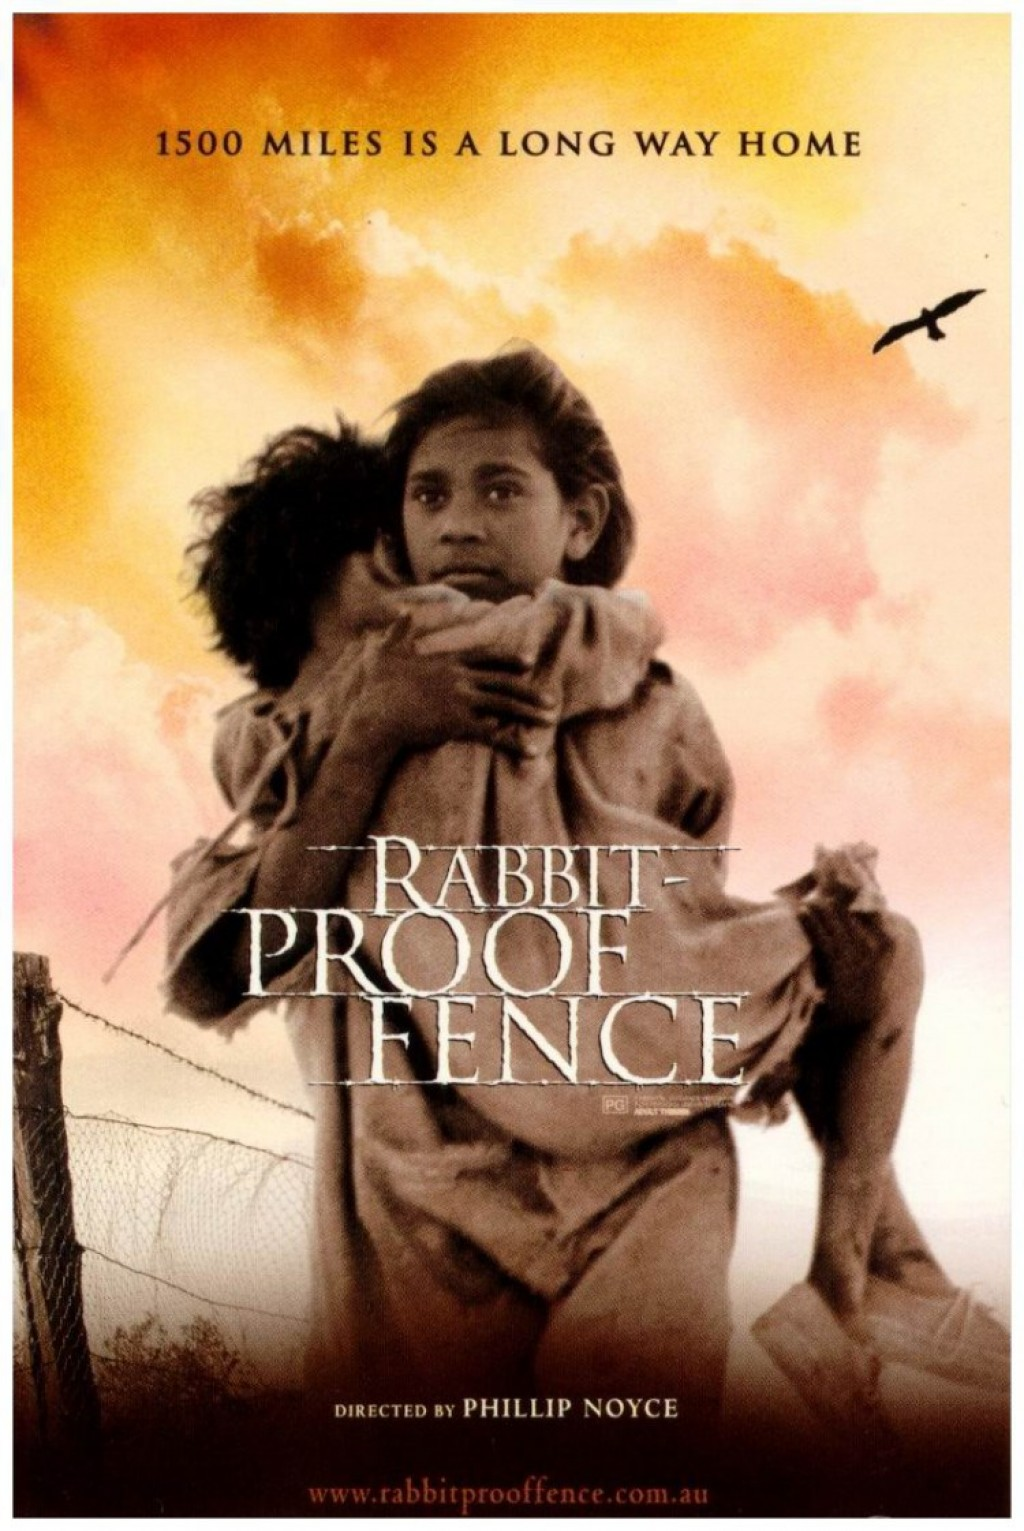 003 Rabbit Proof Fence Film Review Essay 1295772578 48 Top Large